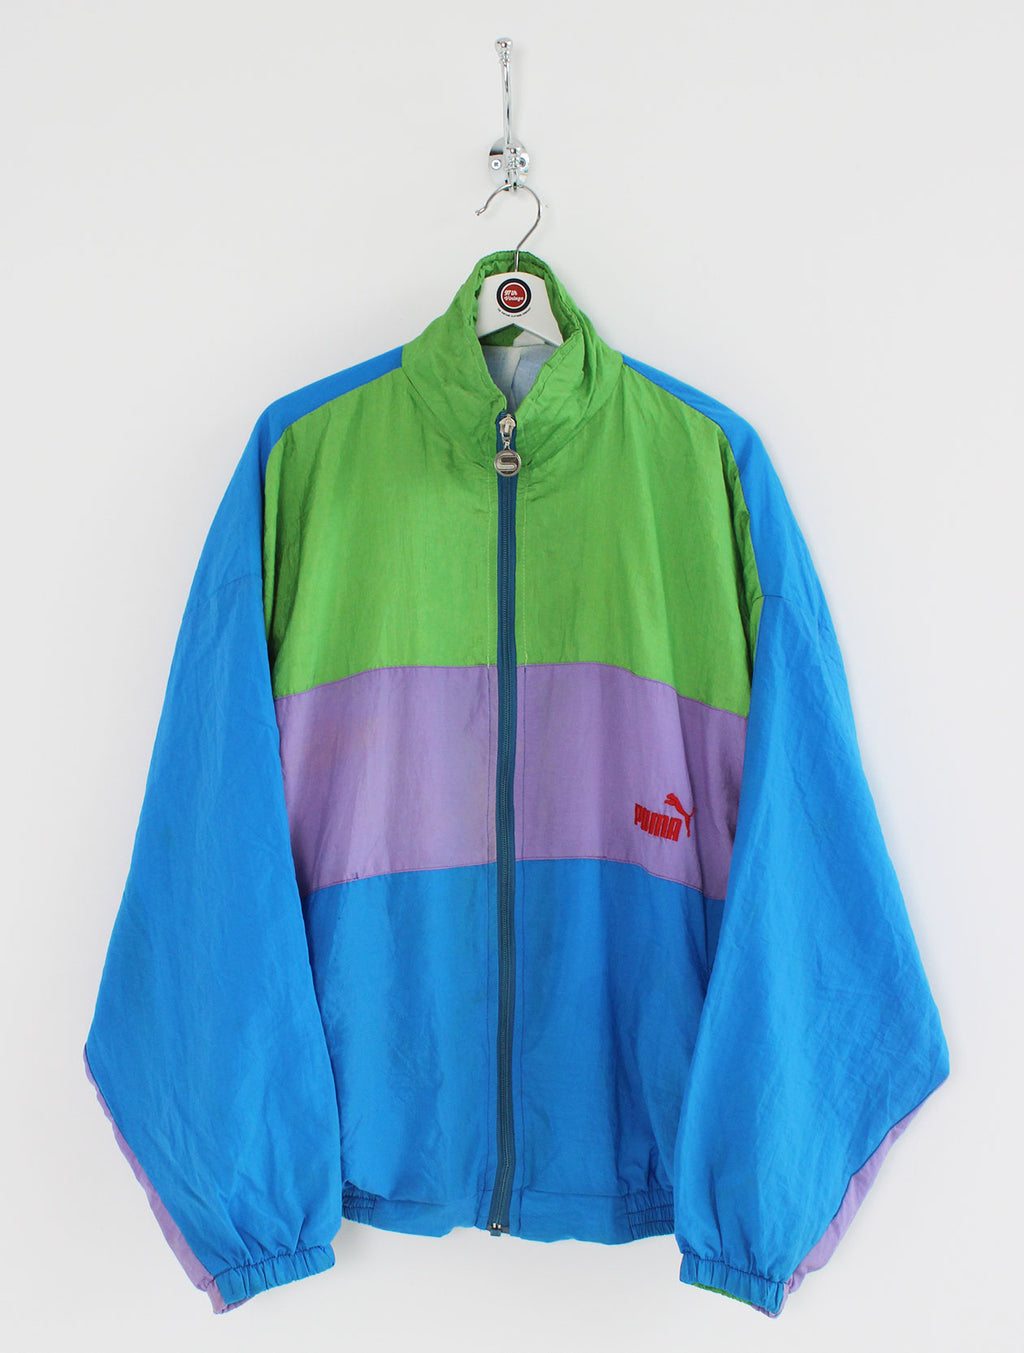 Puma Shell Suit Jacket (XXL)